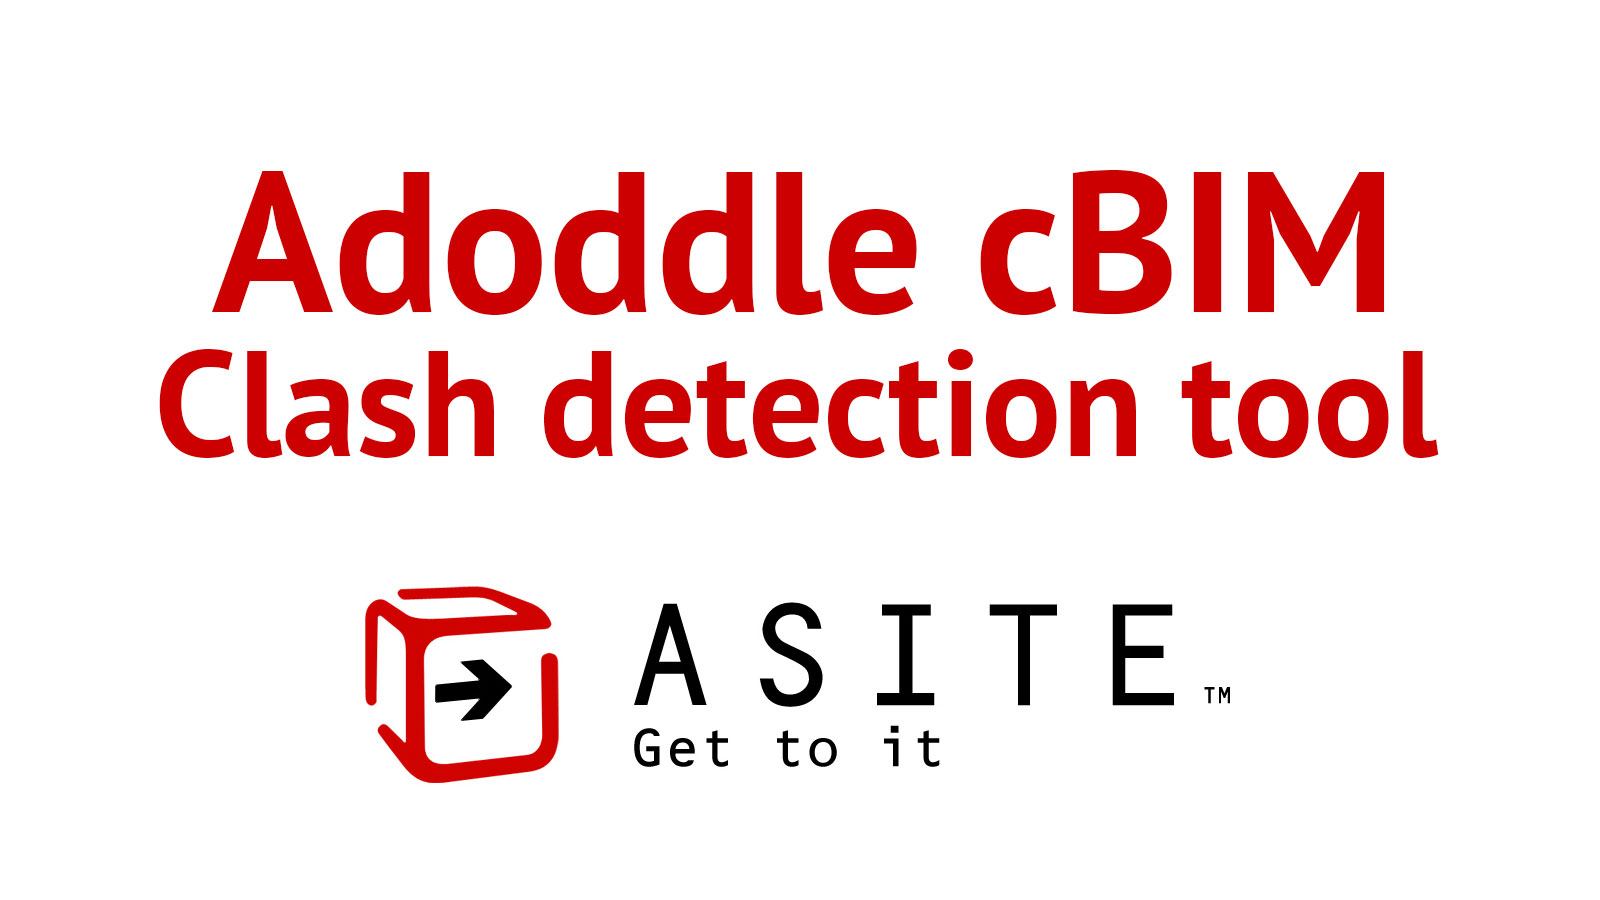 Adoddle cBIM Clash detection tool introduced!